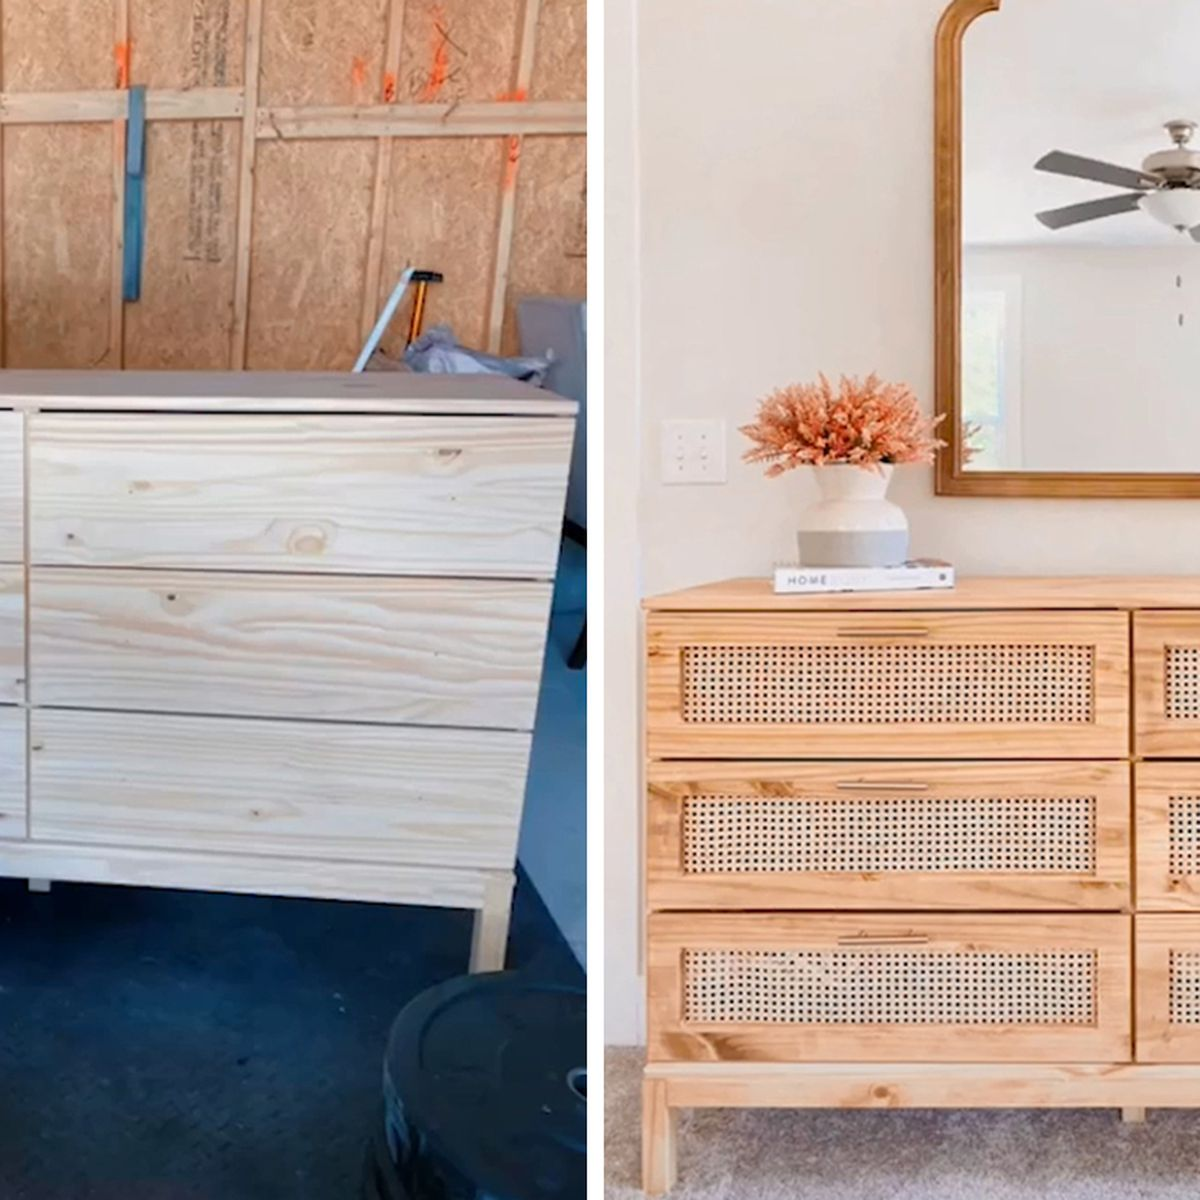 Tiktok Hack Shows How To Turn Ikea Chest Of Drawers Into Trendy Rattan Piece Of Furniture